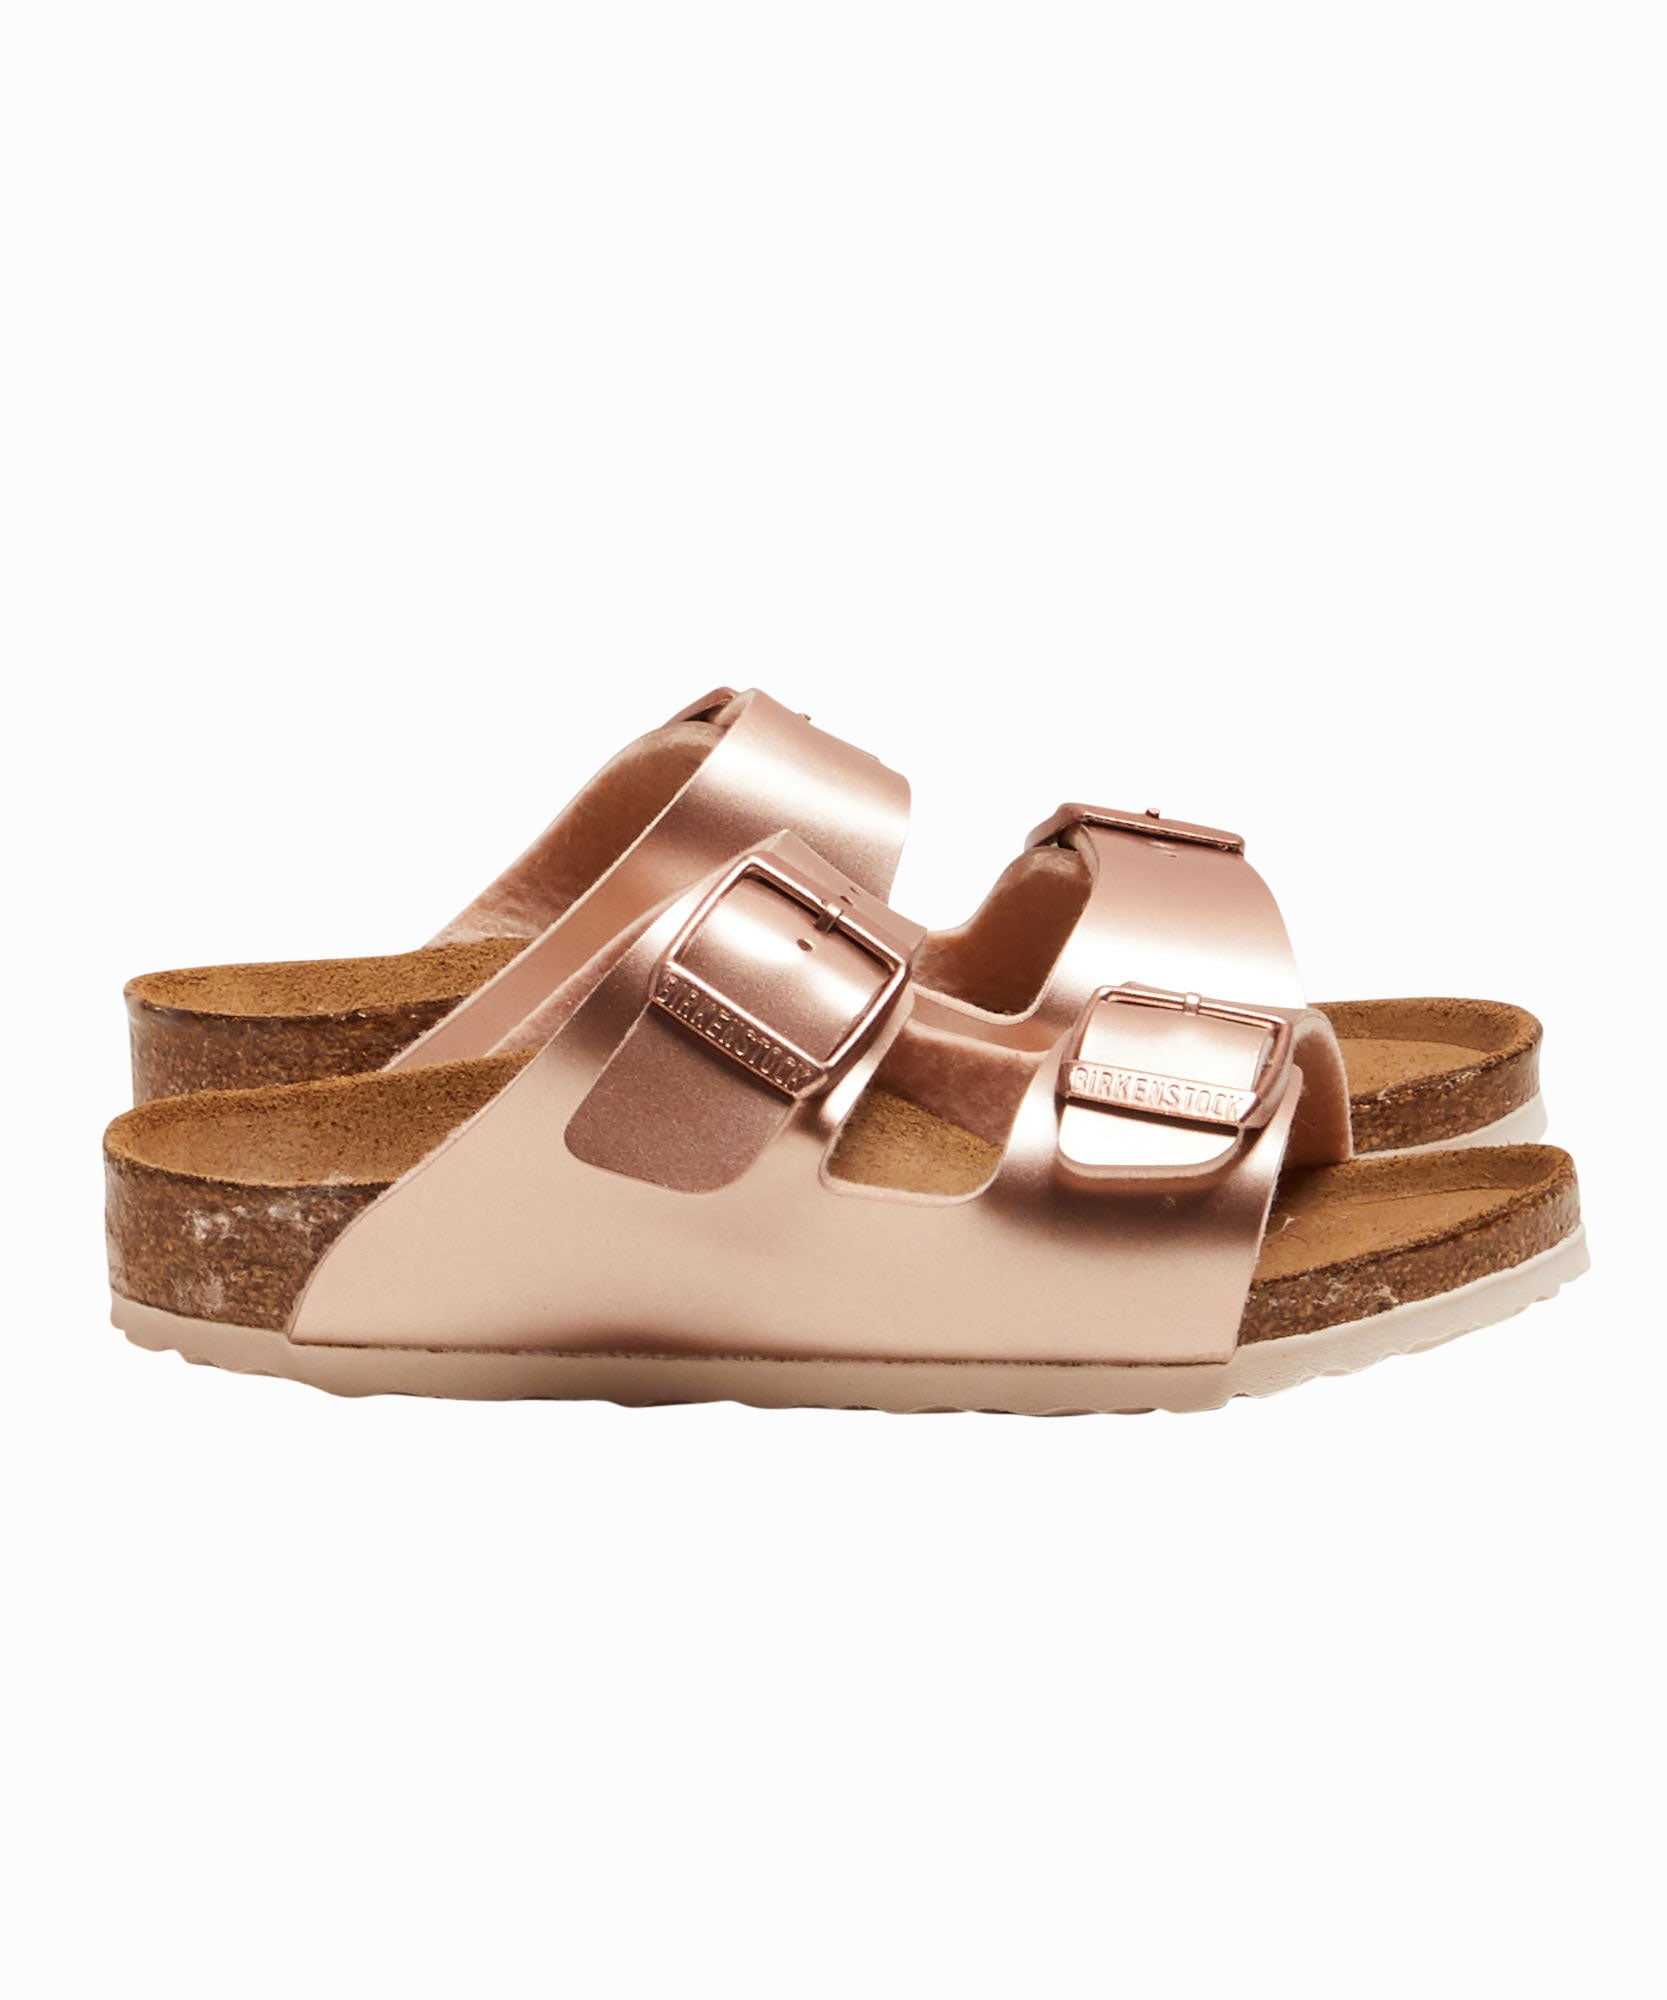 Arizona Electric Metallic Copper Sandals